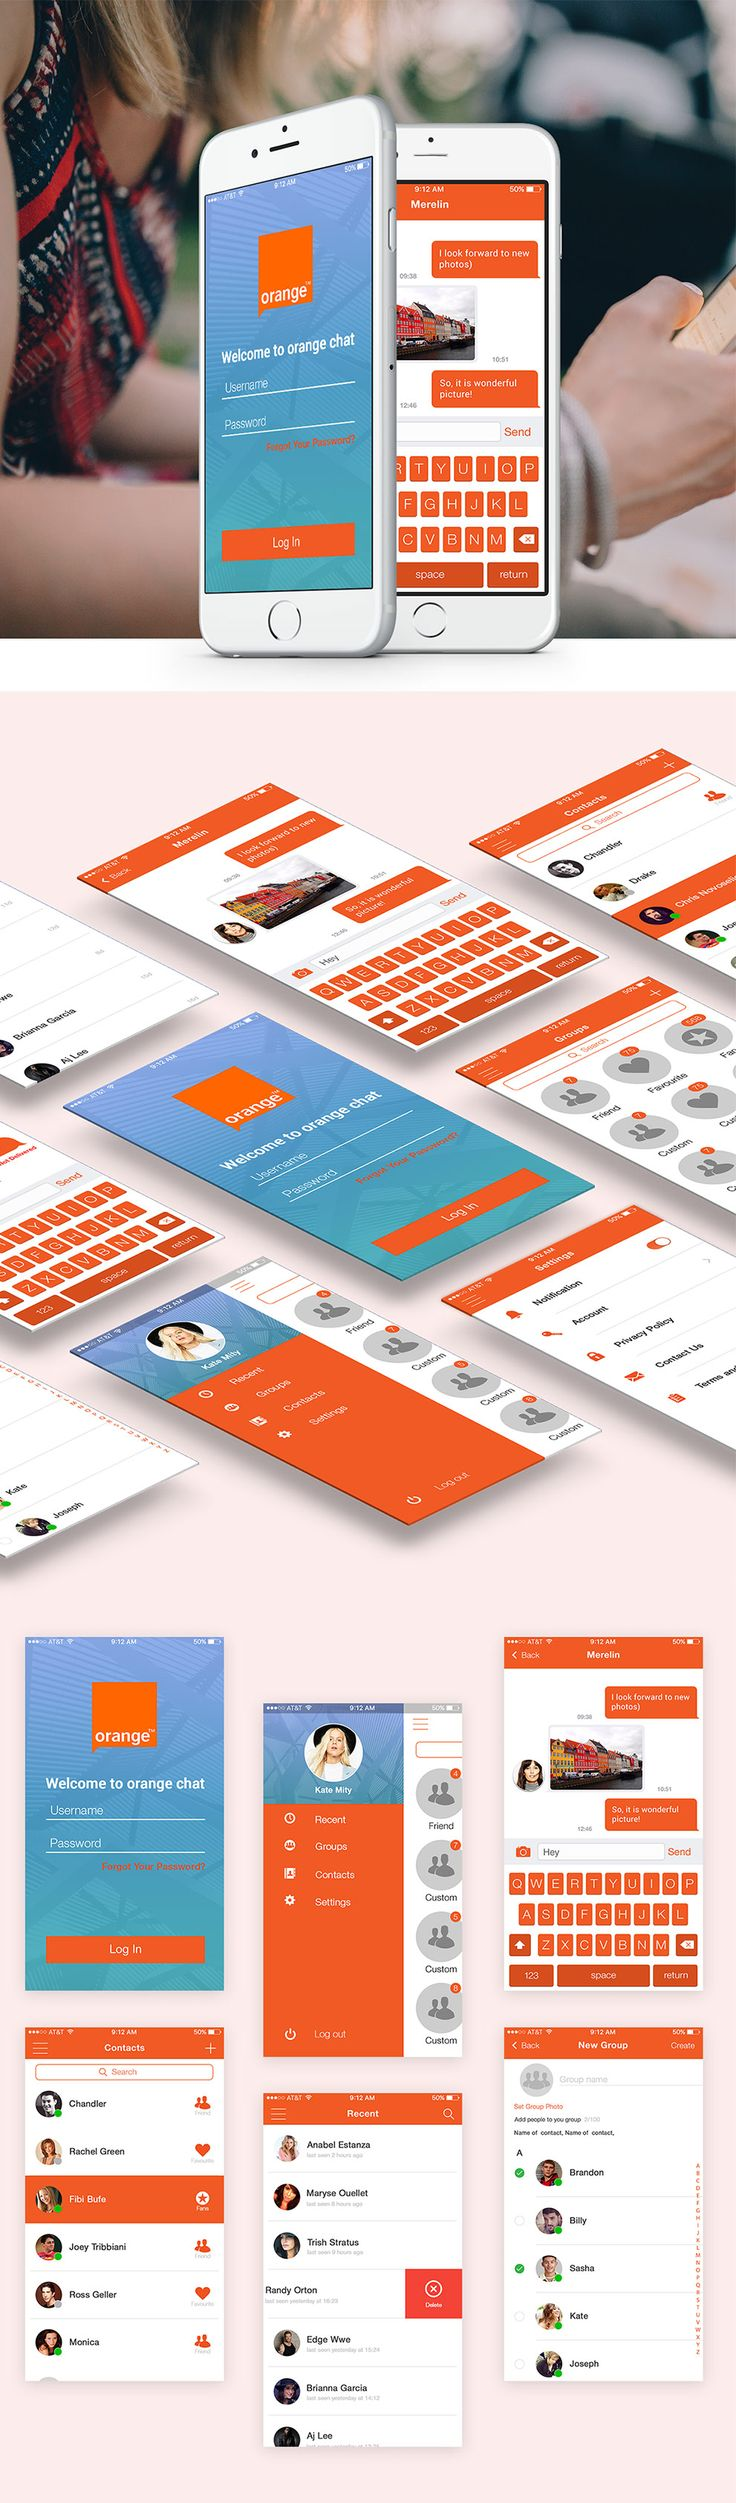 Nice Mobile Chat Application UI Design Free PSD Set. Download Mobile Chat Application UI Design Free PSD Set. Modern chat app design ui / ux available to download in photoshop layered psd format. This Orange Chat iOS ui kit contains 6 screens which will help in creating your own app. It will also provide the necessary inspiration to create other designs. Hope you like it. Enjoy!